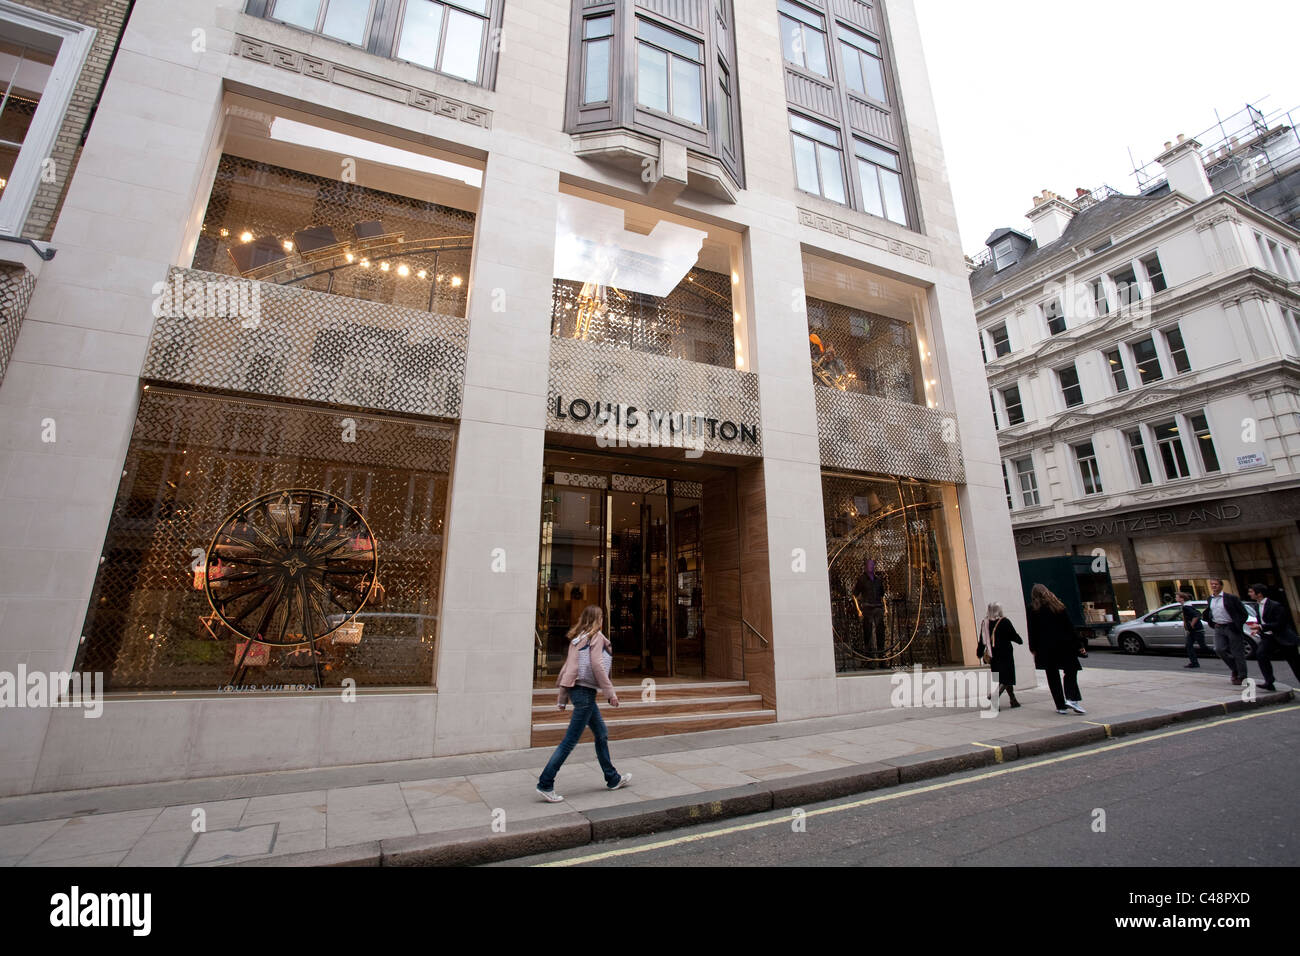 Louis Vuitton flagship store in Bond Street, Central London UK. Photo:Jeff Gilbert - Stock Image